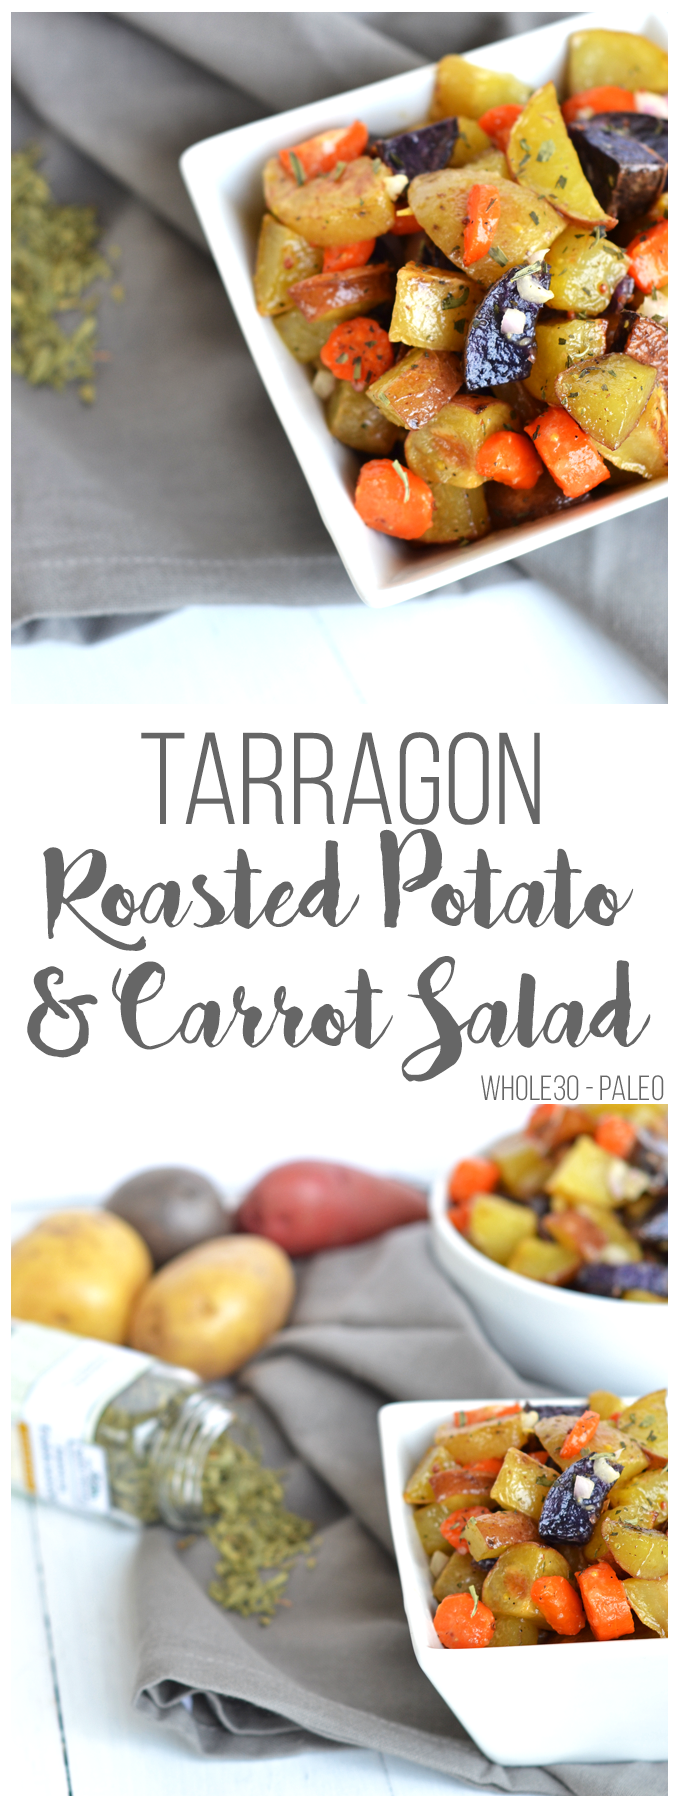 This Tarragon Roasted Potato & Carrot Salad is the perfect side dish for any occasion! Full of flavor with a light dressing that doesn't weigh you down. Whole30 compliant and paleo make for a healthy dish!